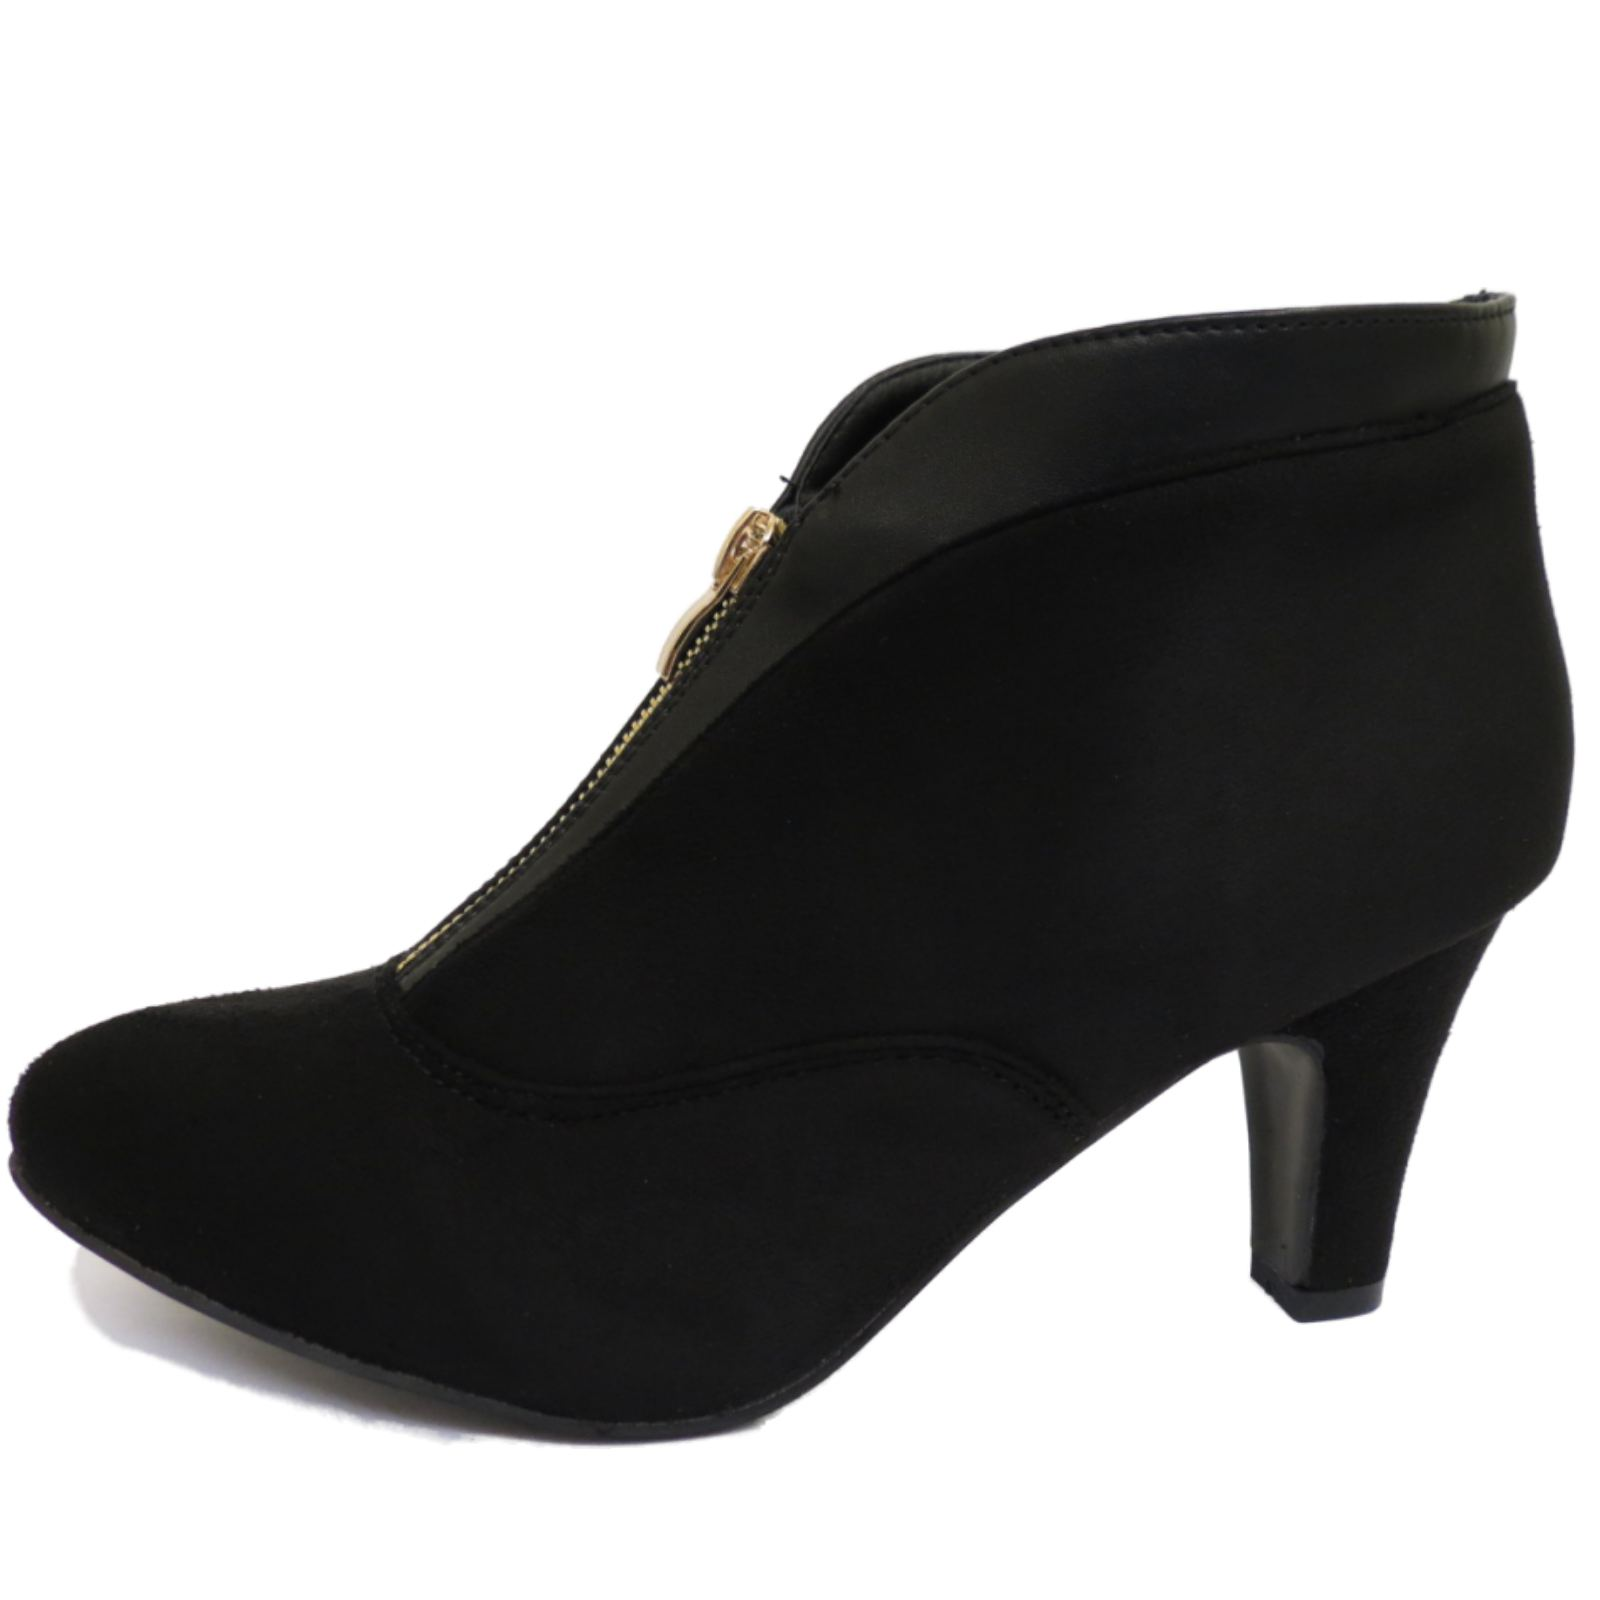 c9eb5426506 Details about LADIES BLACK ZIP-UP KITTEN LOW HEEL FAUX-SUEDE ANKLE BOOTS  WORK SHOES SIZES 4-8